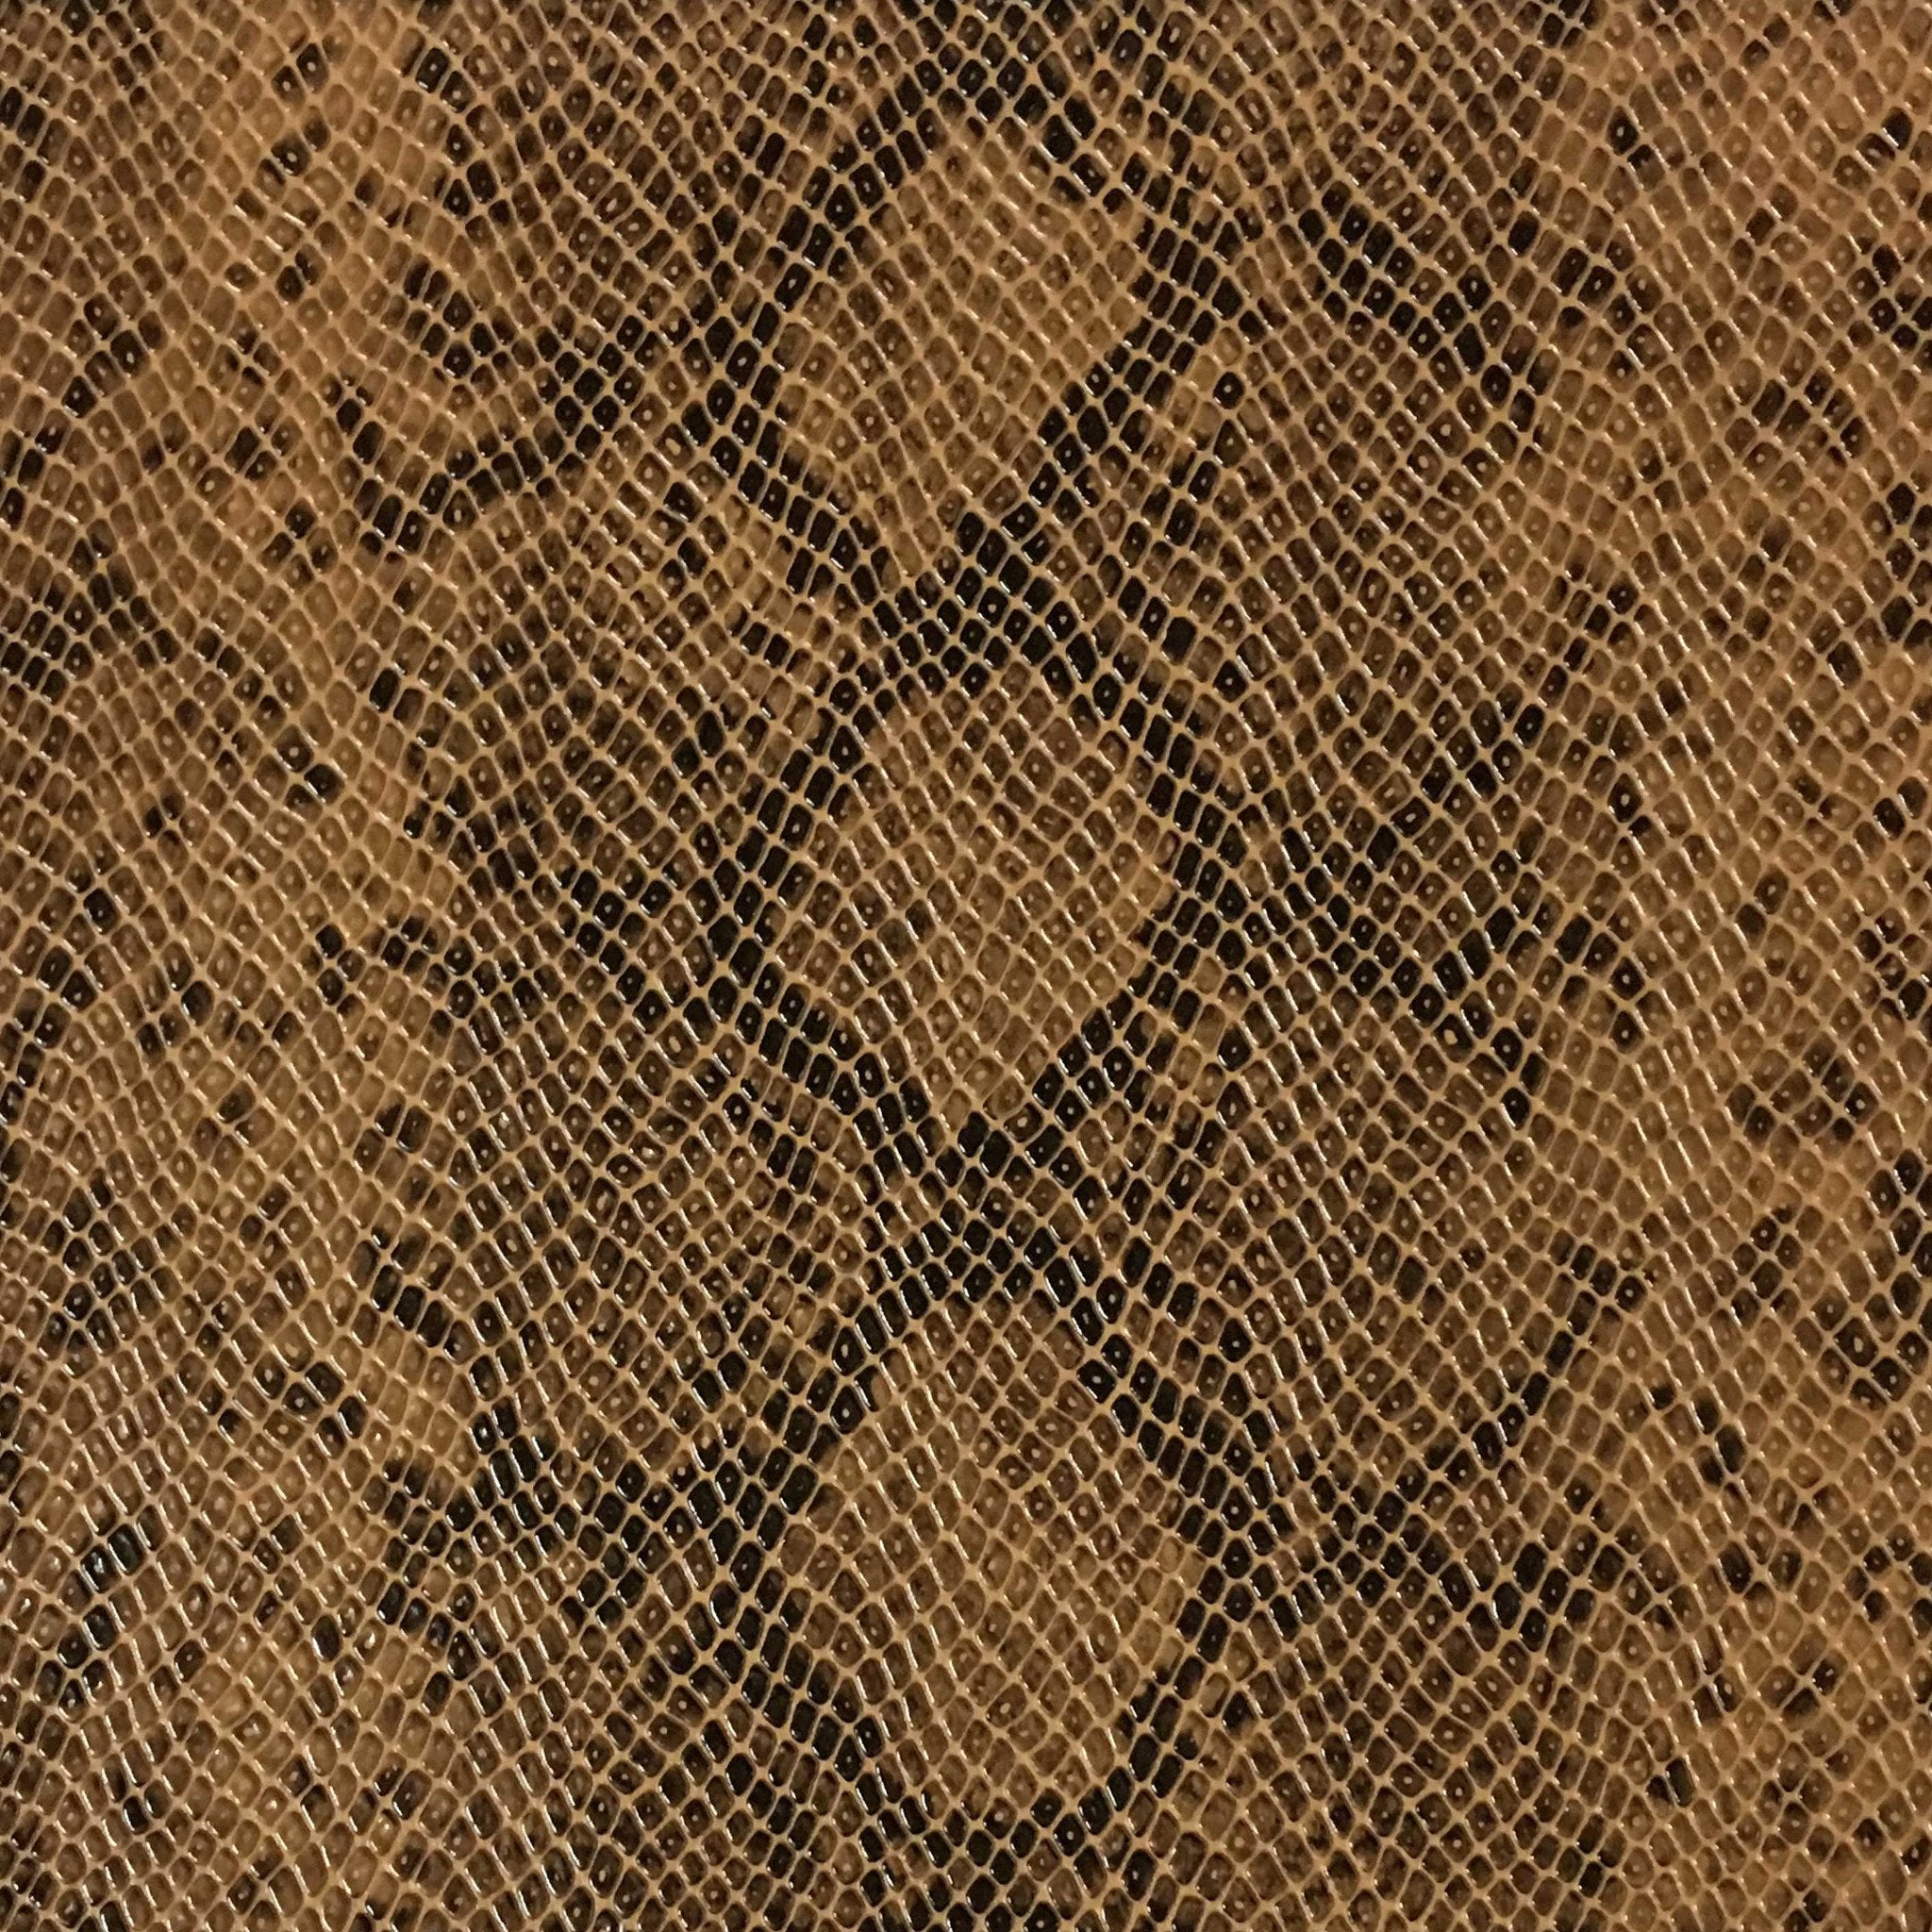 York - Snake Skin Pattern Embossed Vinyl Upholstery Fabric by the Yard -  Available in 5 Colors